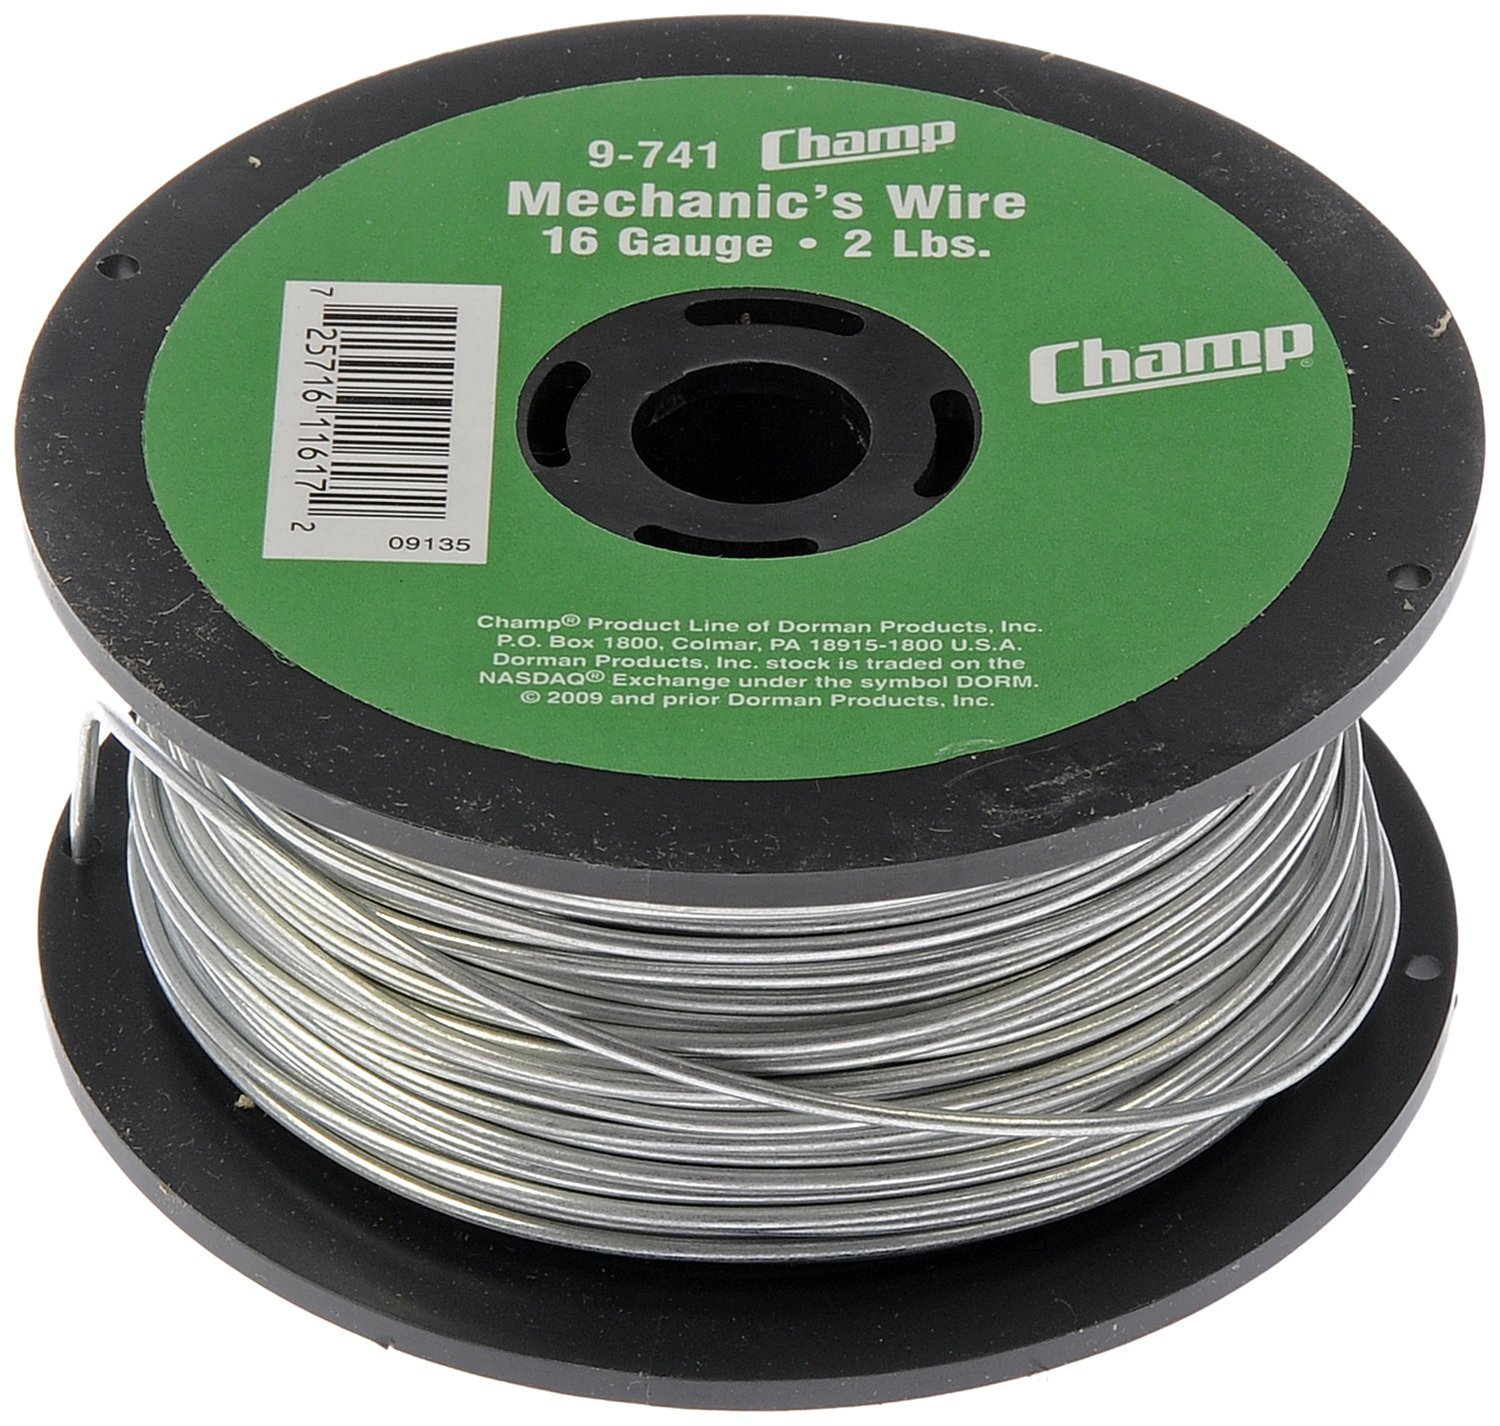 Amazon.com: Dorman 9-741 16 Gauge Coil Mechanics Wire: Automotive